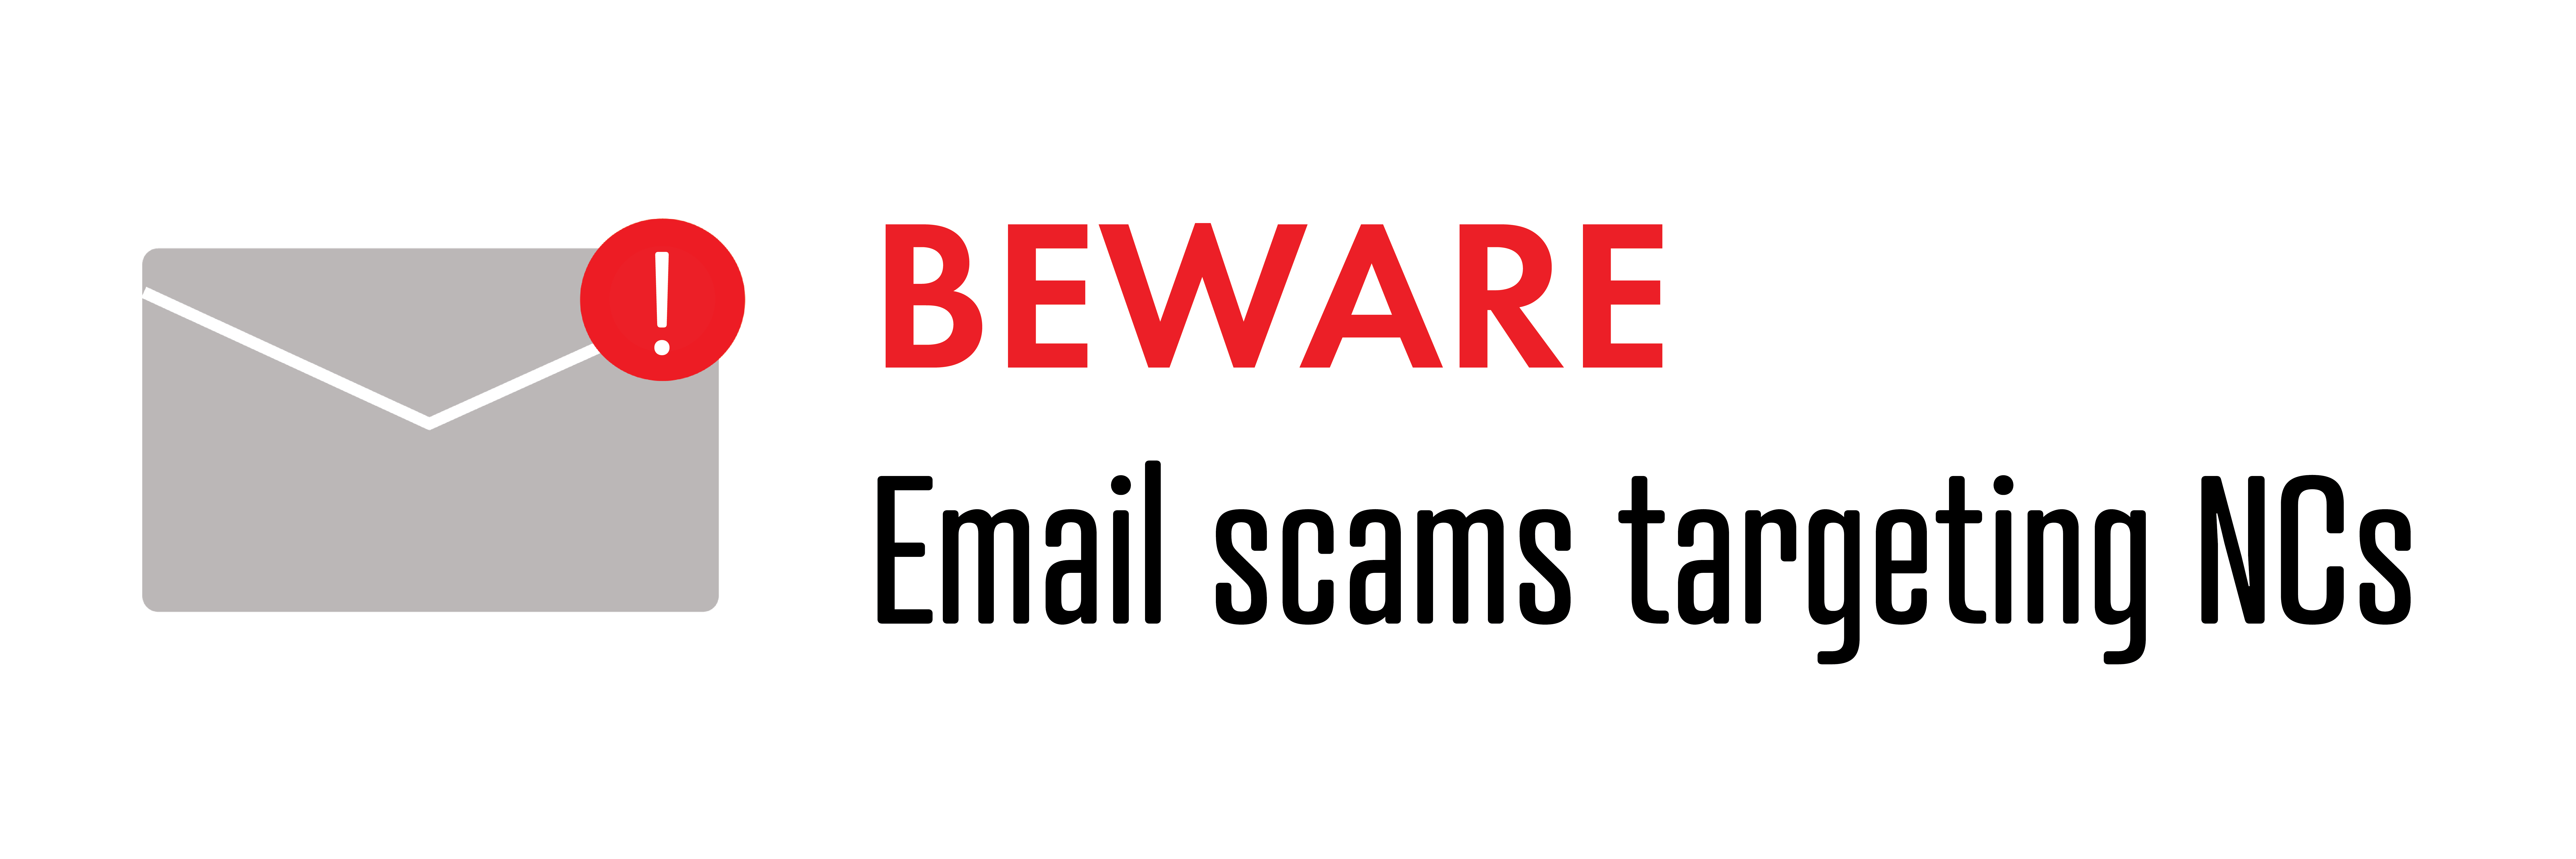 Beware These Email Scams Targeting NCs